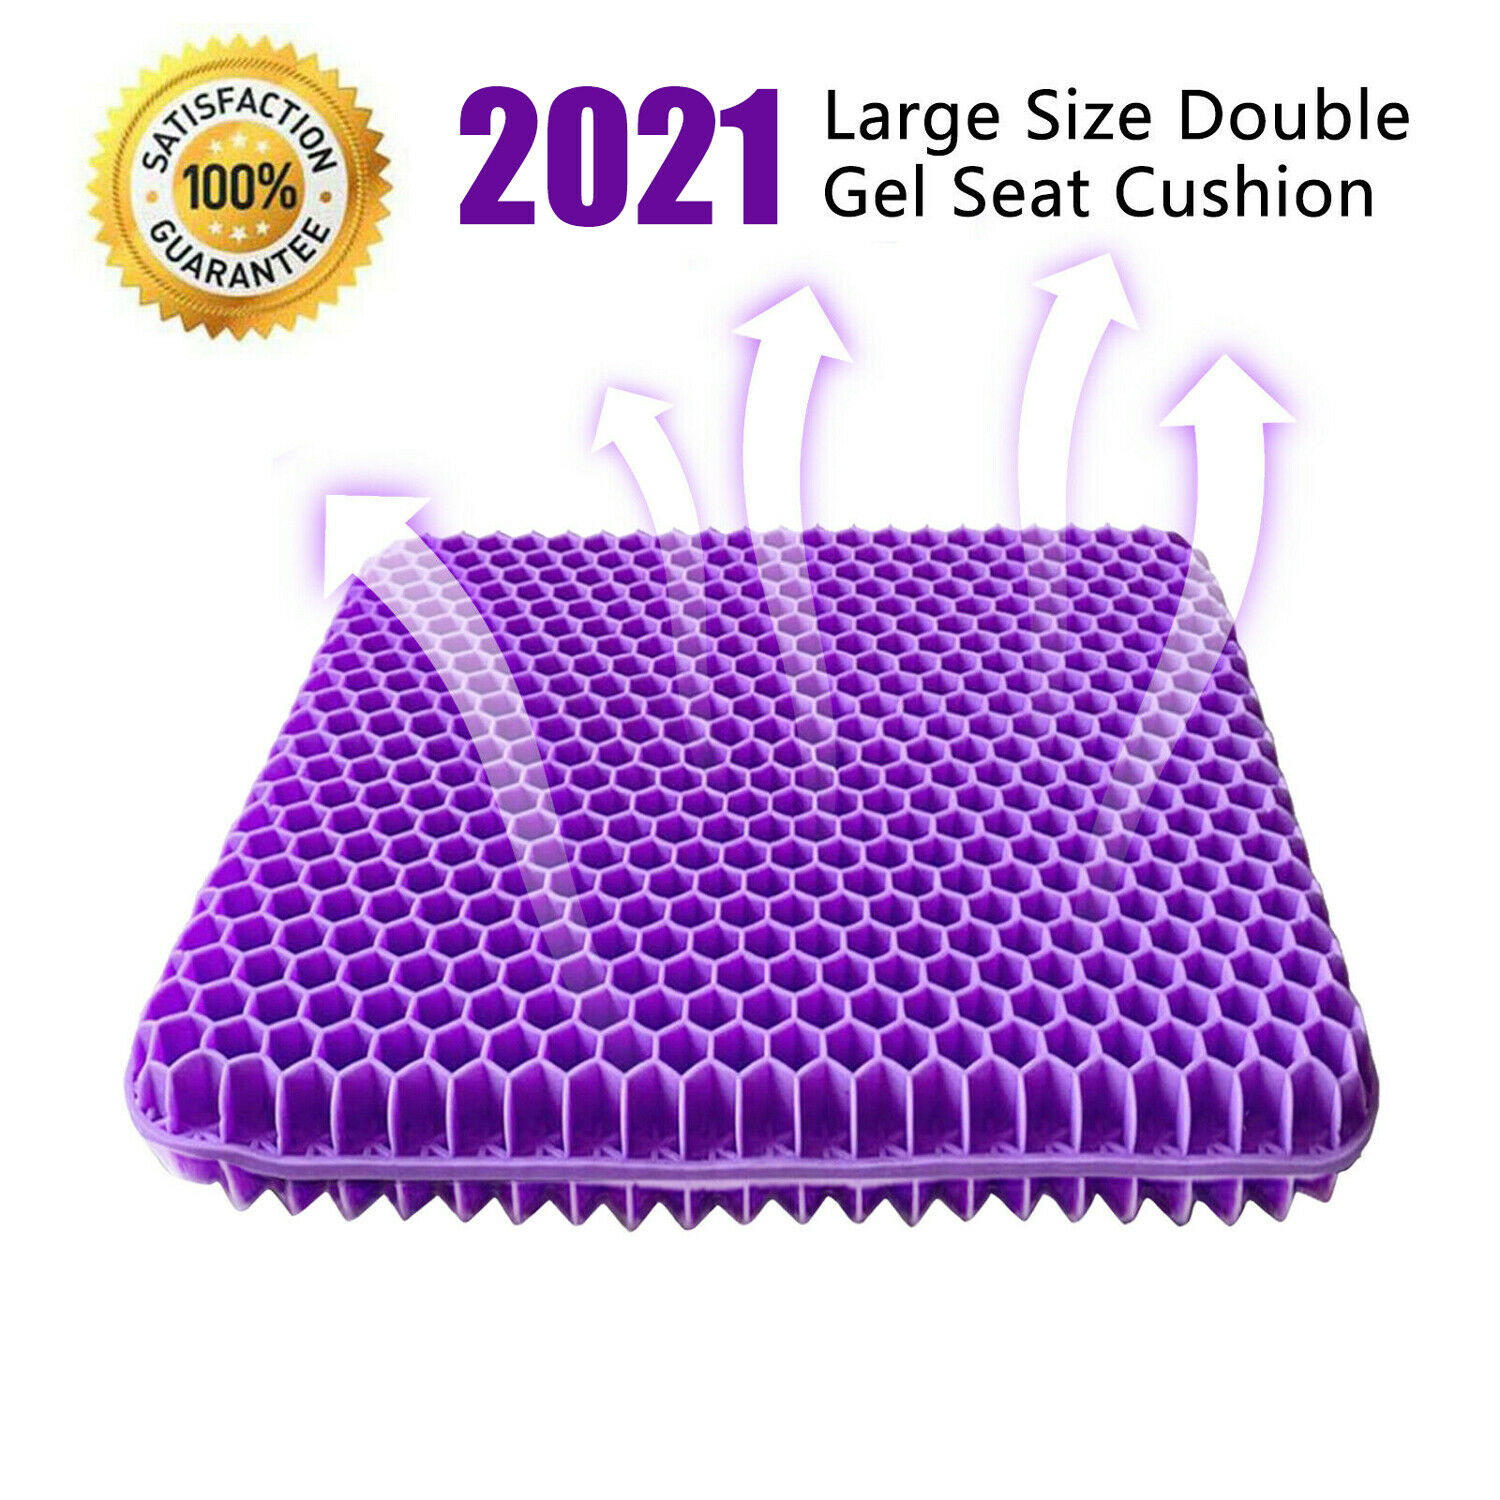 Best NEW GEL SEAT CUSHION DOUBLE THICK EGG SEAT CUSHION NON-SLIP COVER BREATHABLE DESIGN